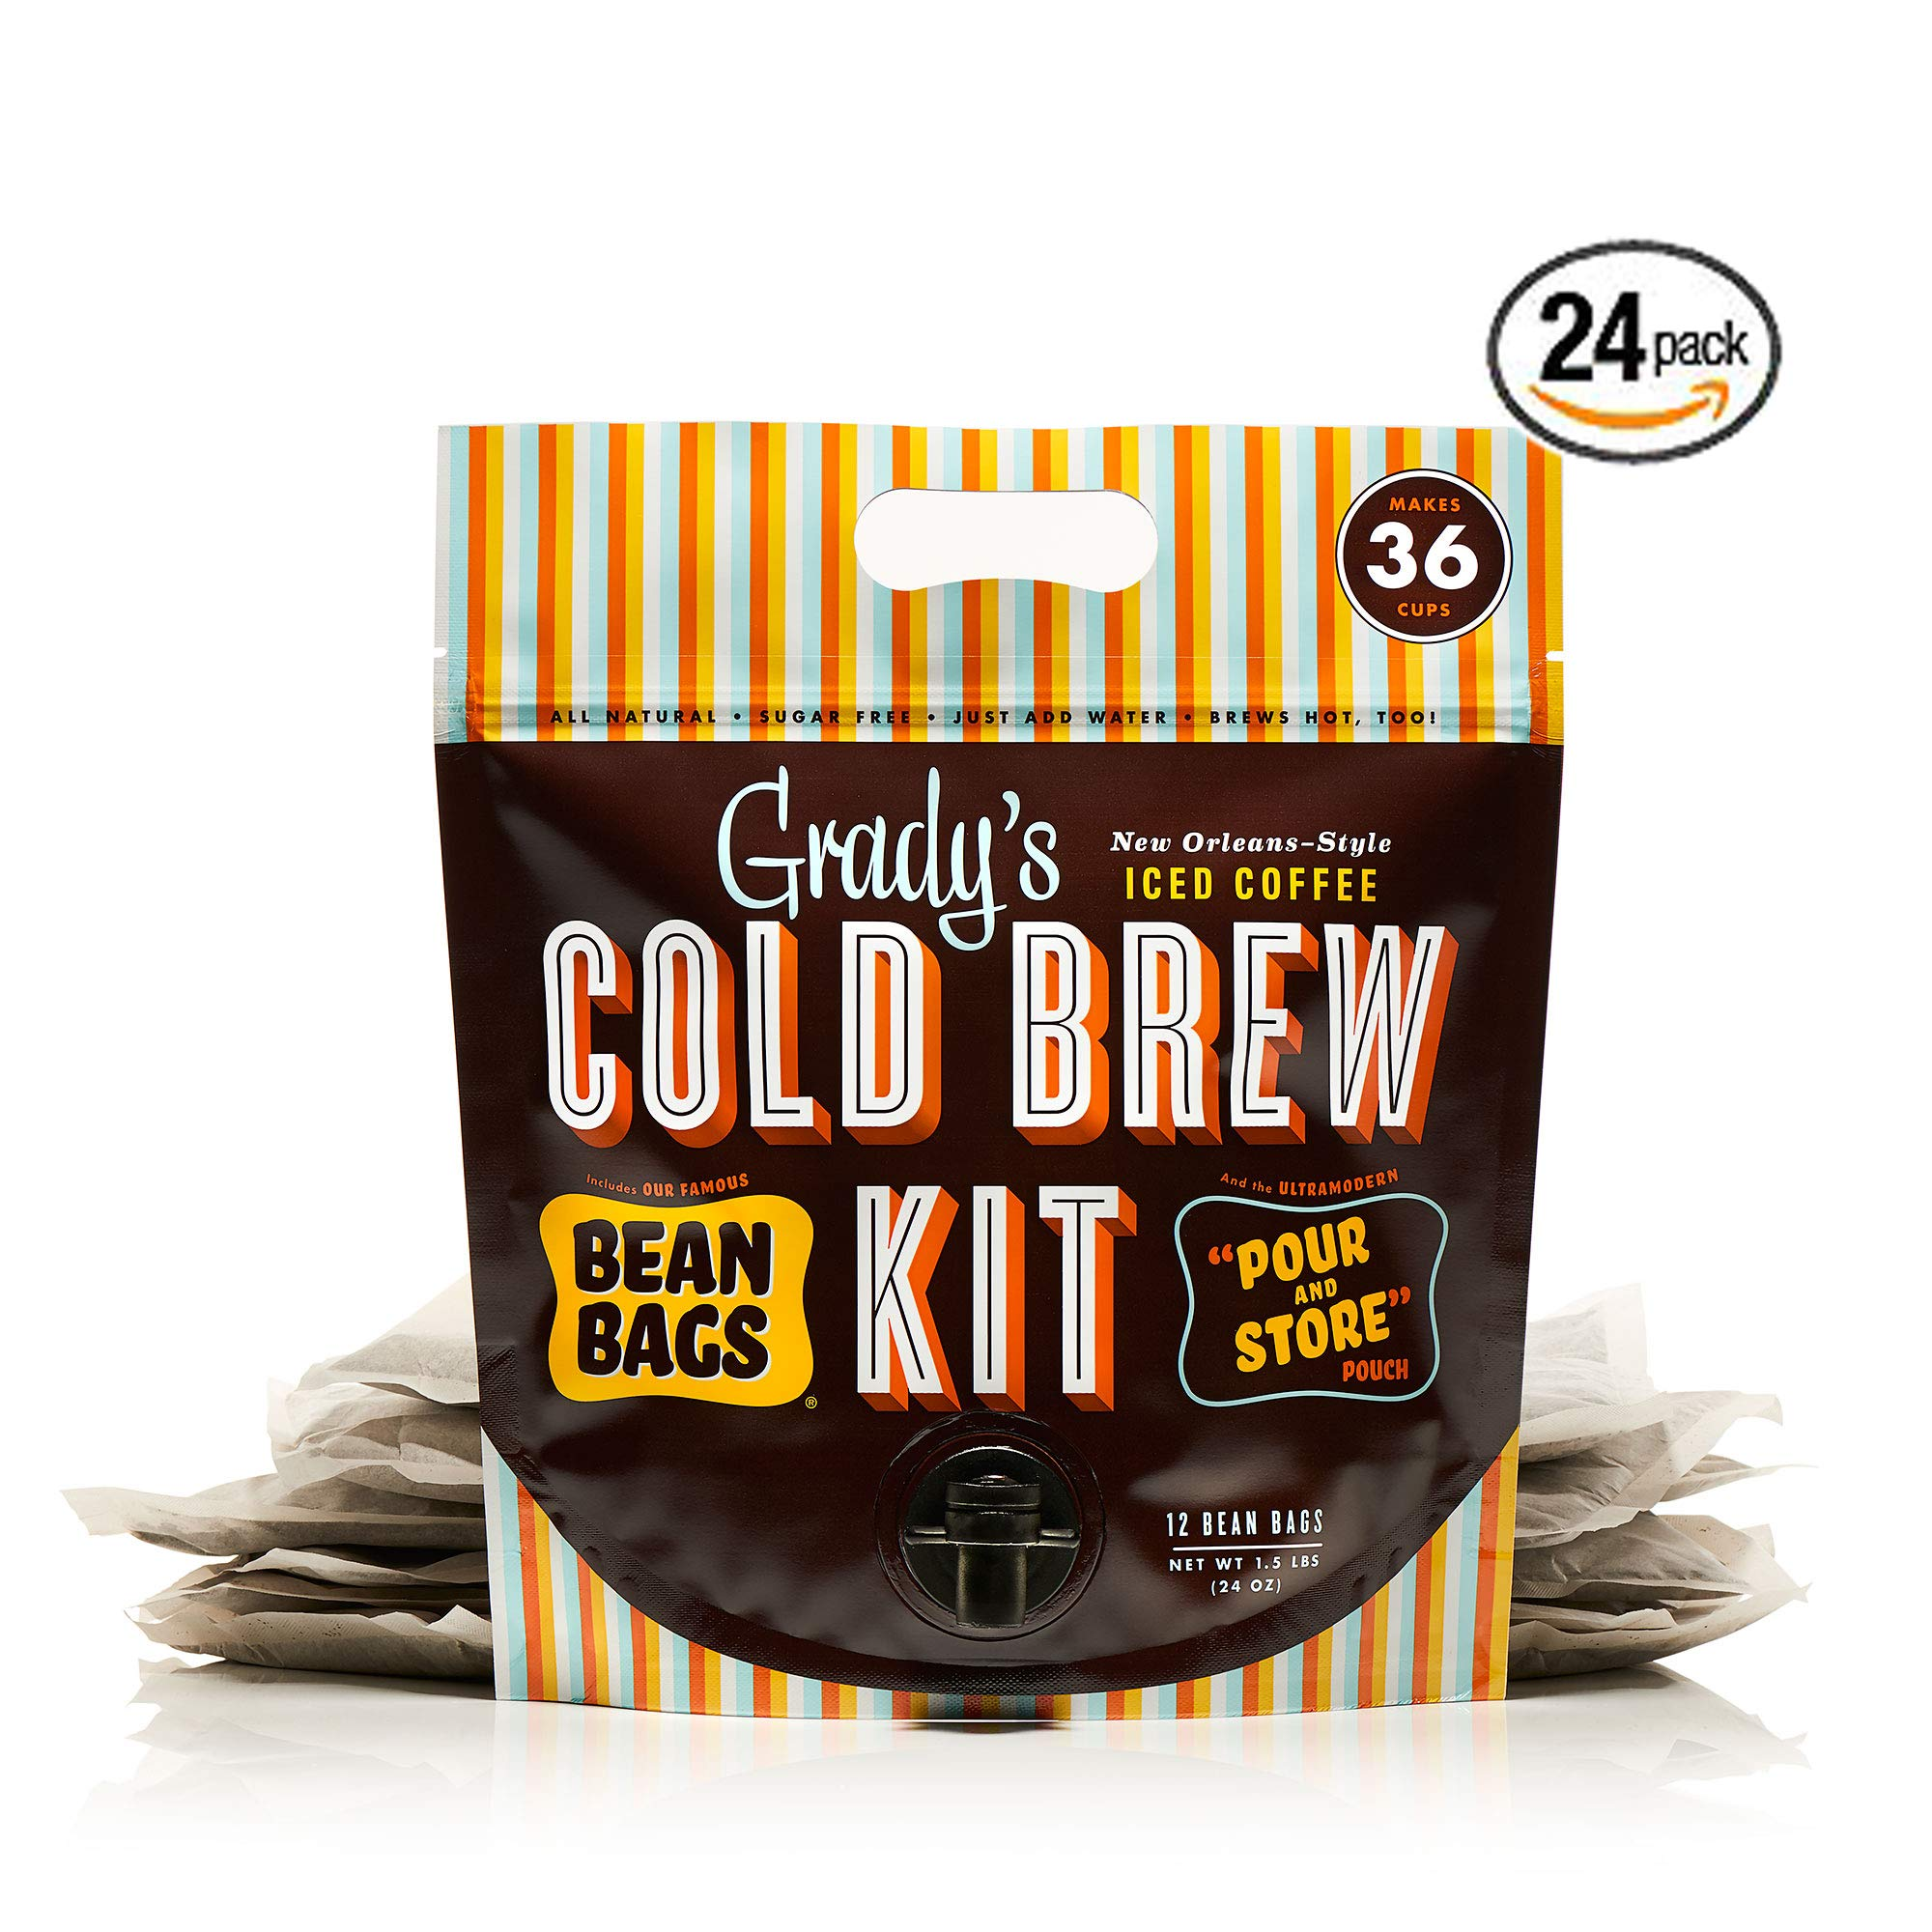 Grady's Cold Brew Iced Coffee Kit, New Orleans Style, 24 ounces (Pack of 24)